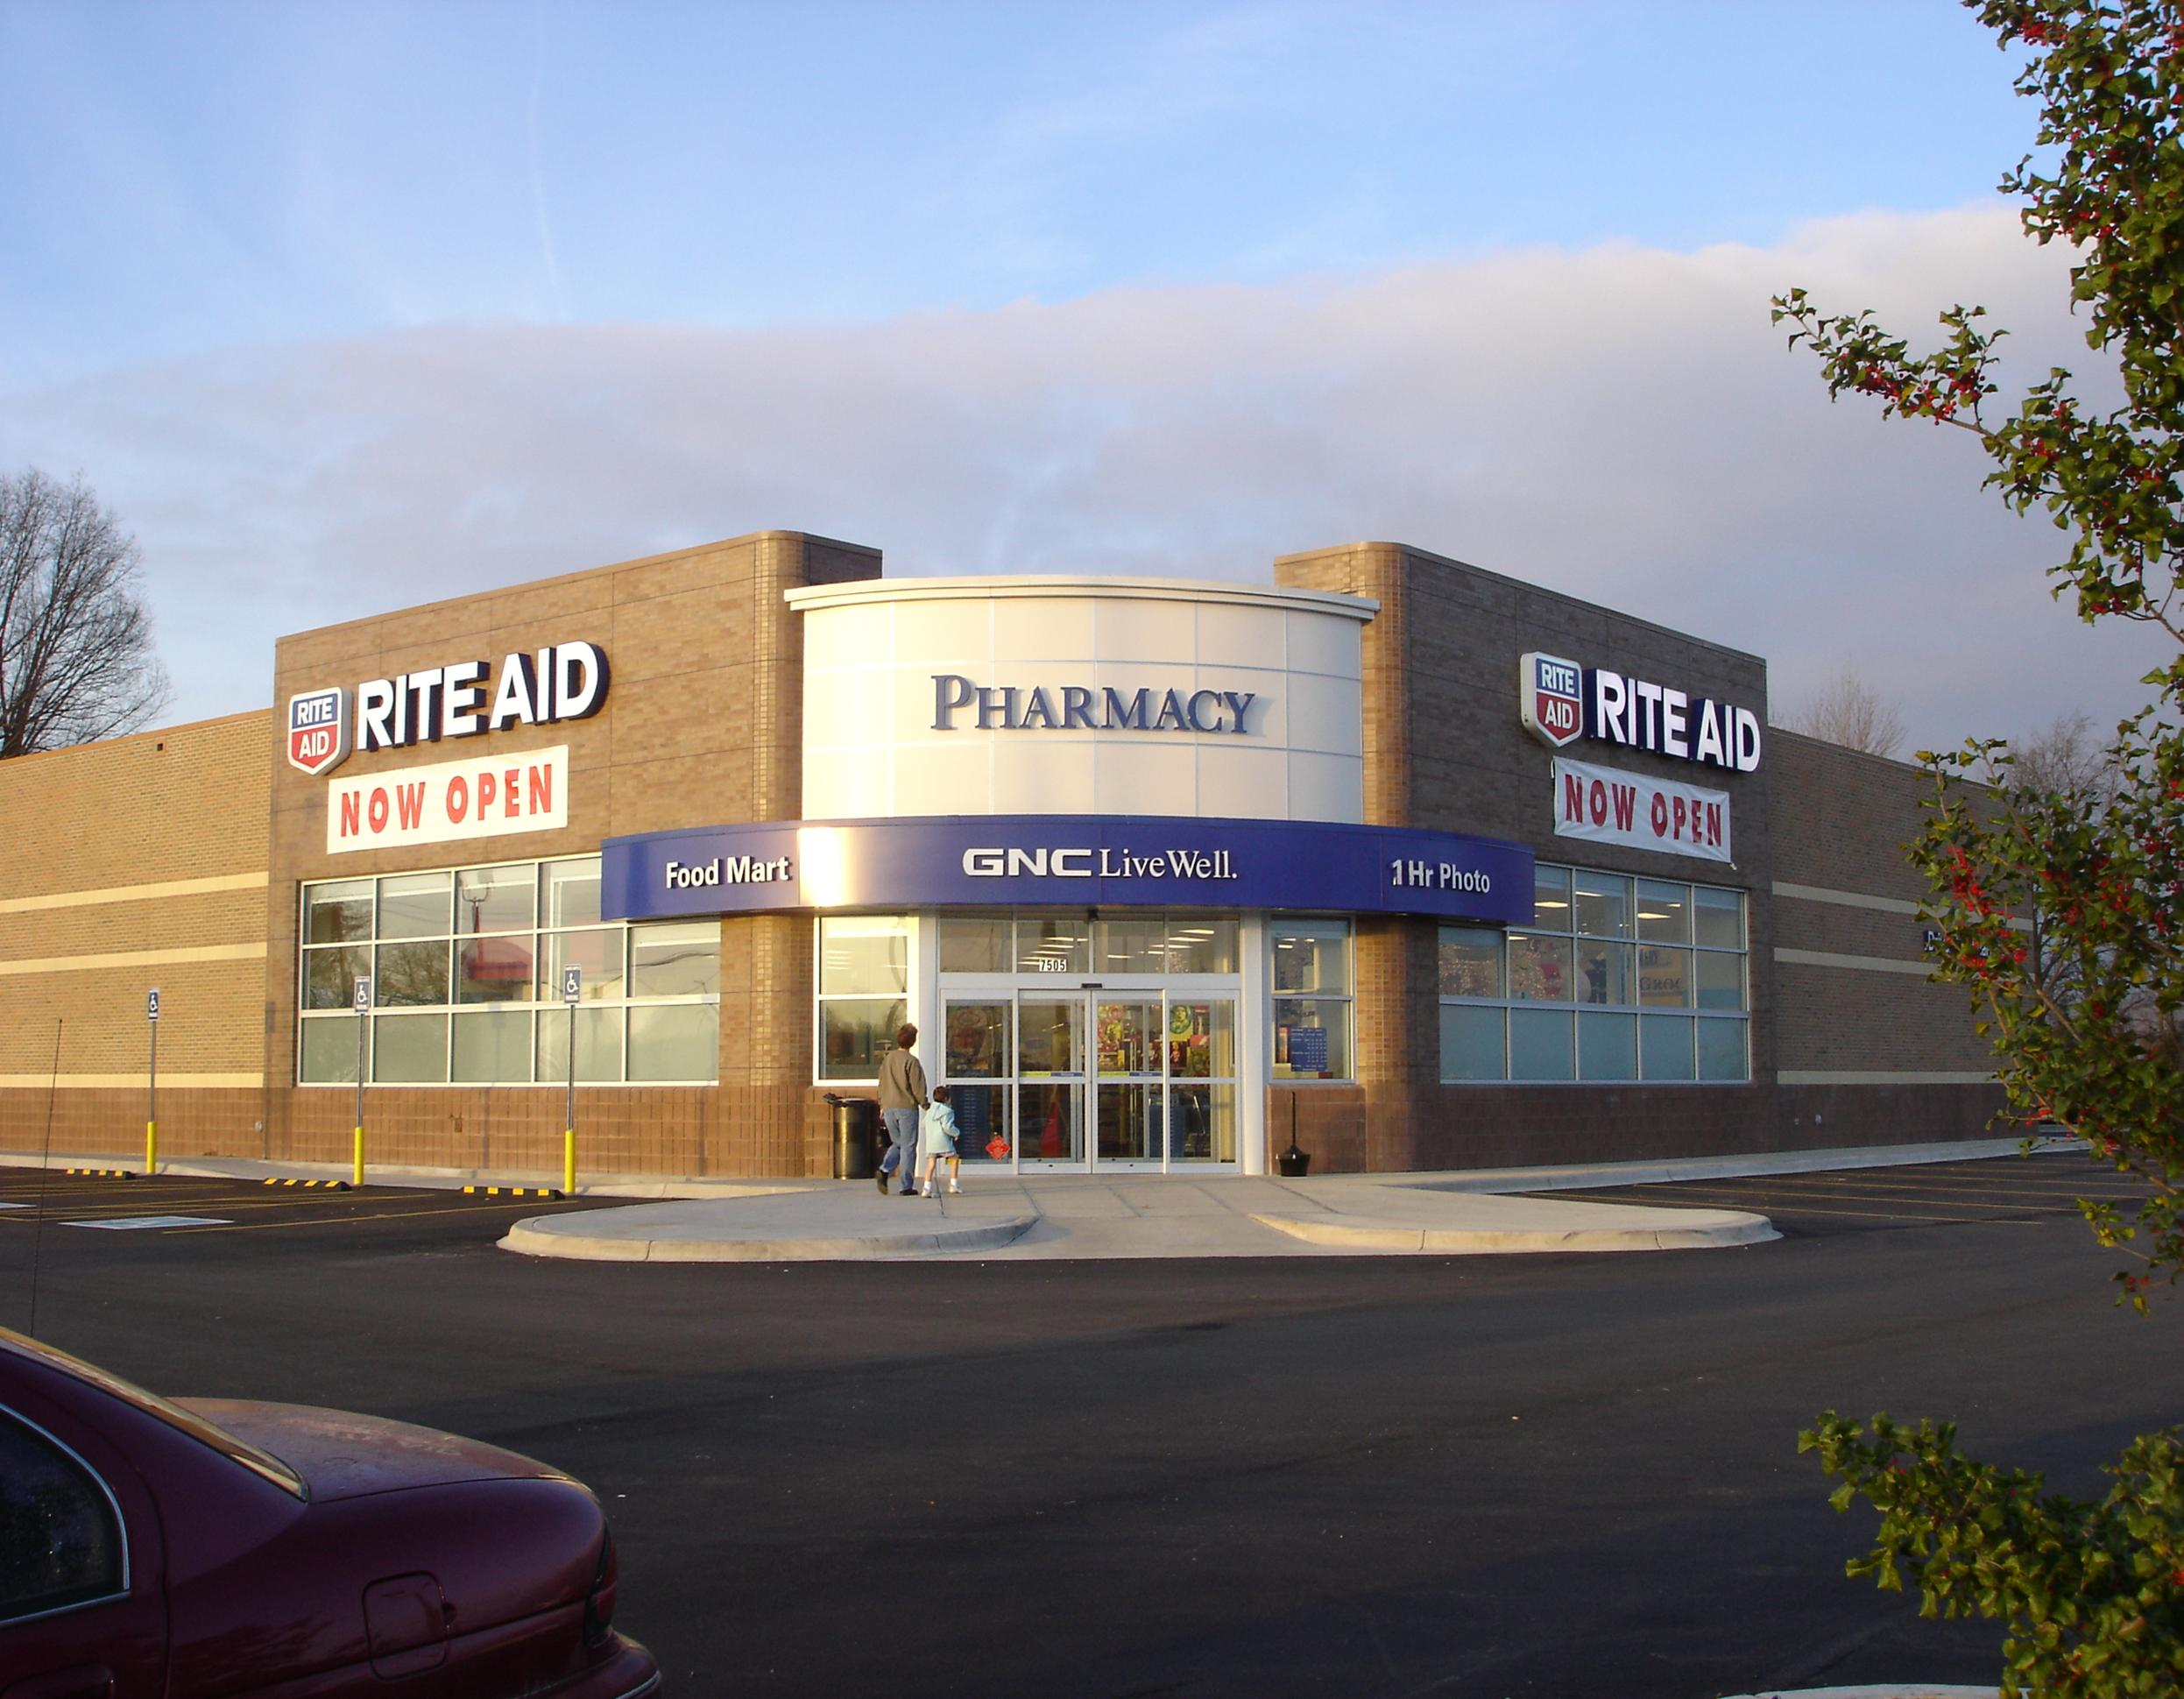 gm crisalli associates inc retail chase manhattan bank syracuse ny renovation of an existing check processing facility